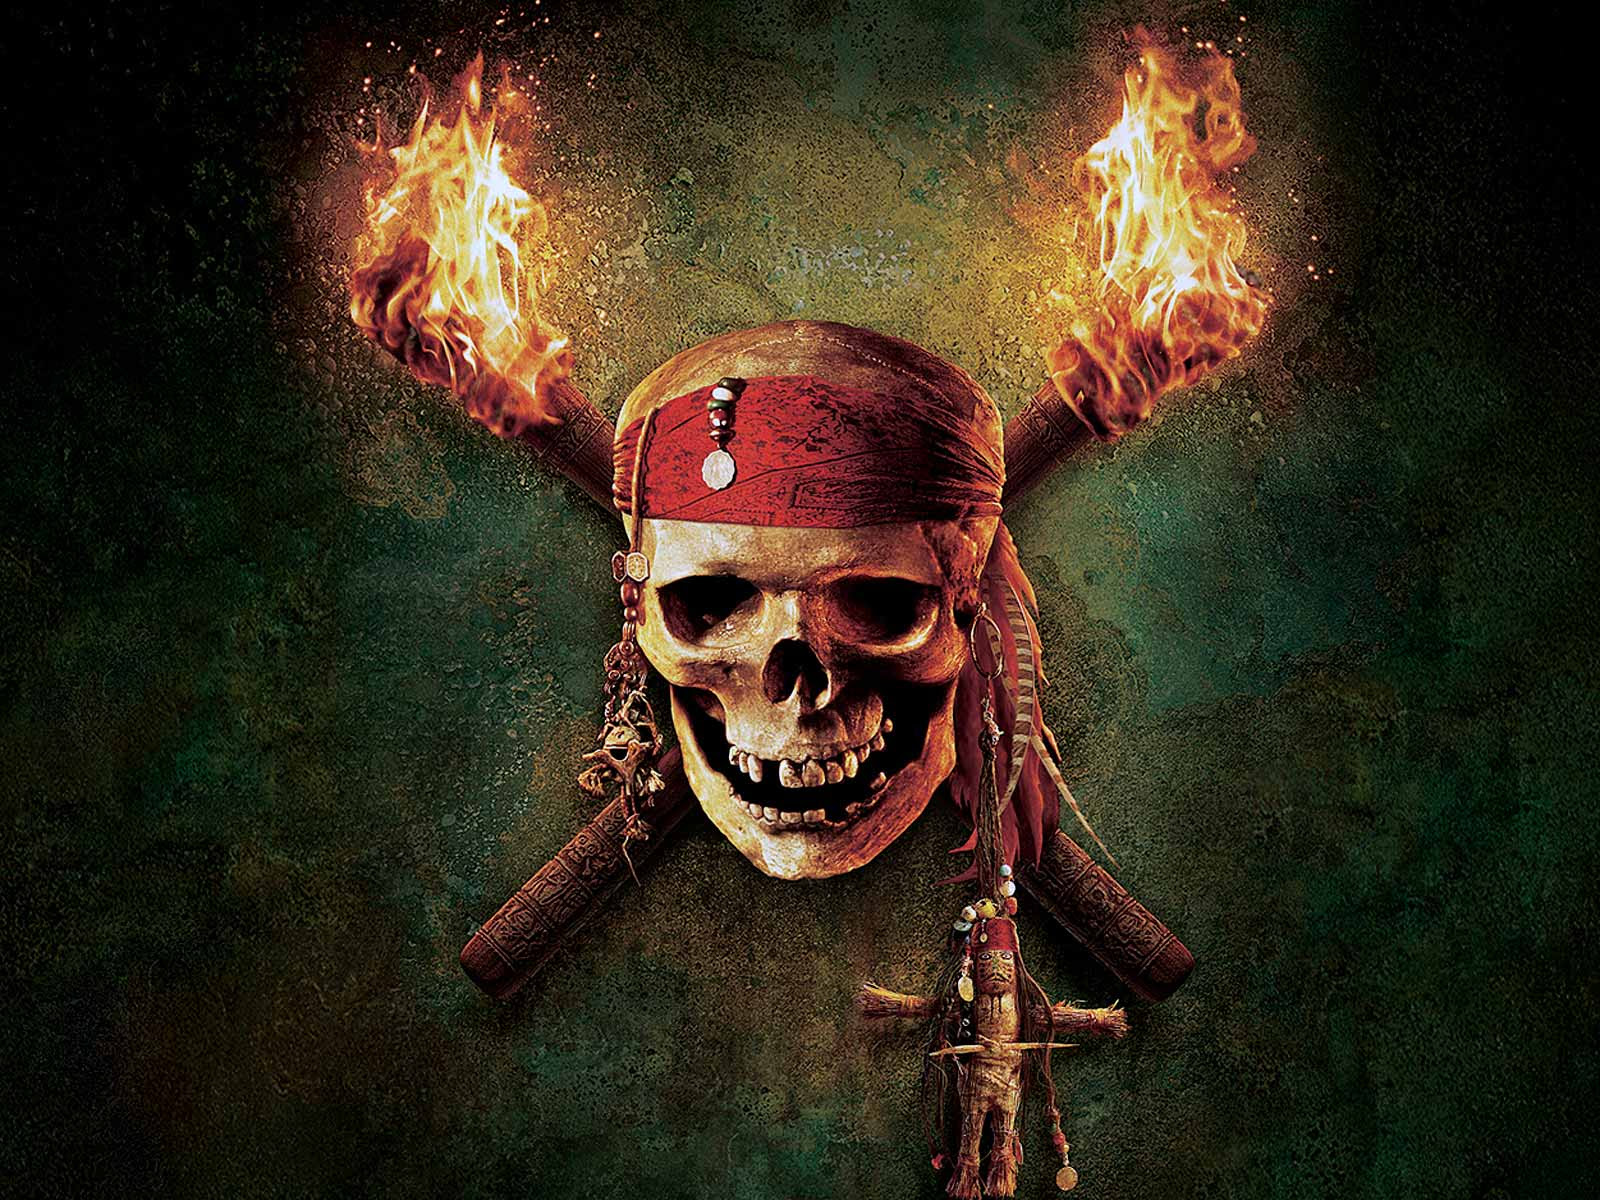 Pirates Of The Caribbean Skull Desktop Wallpaper